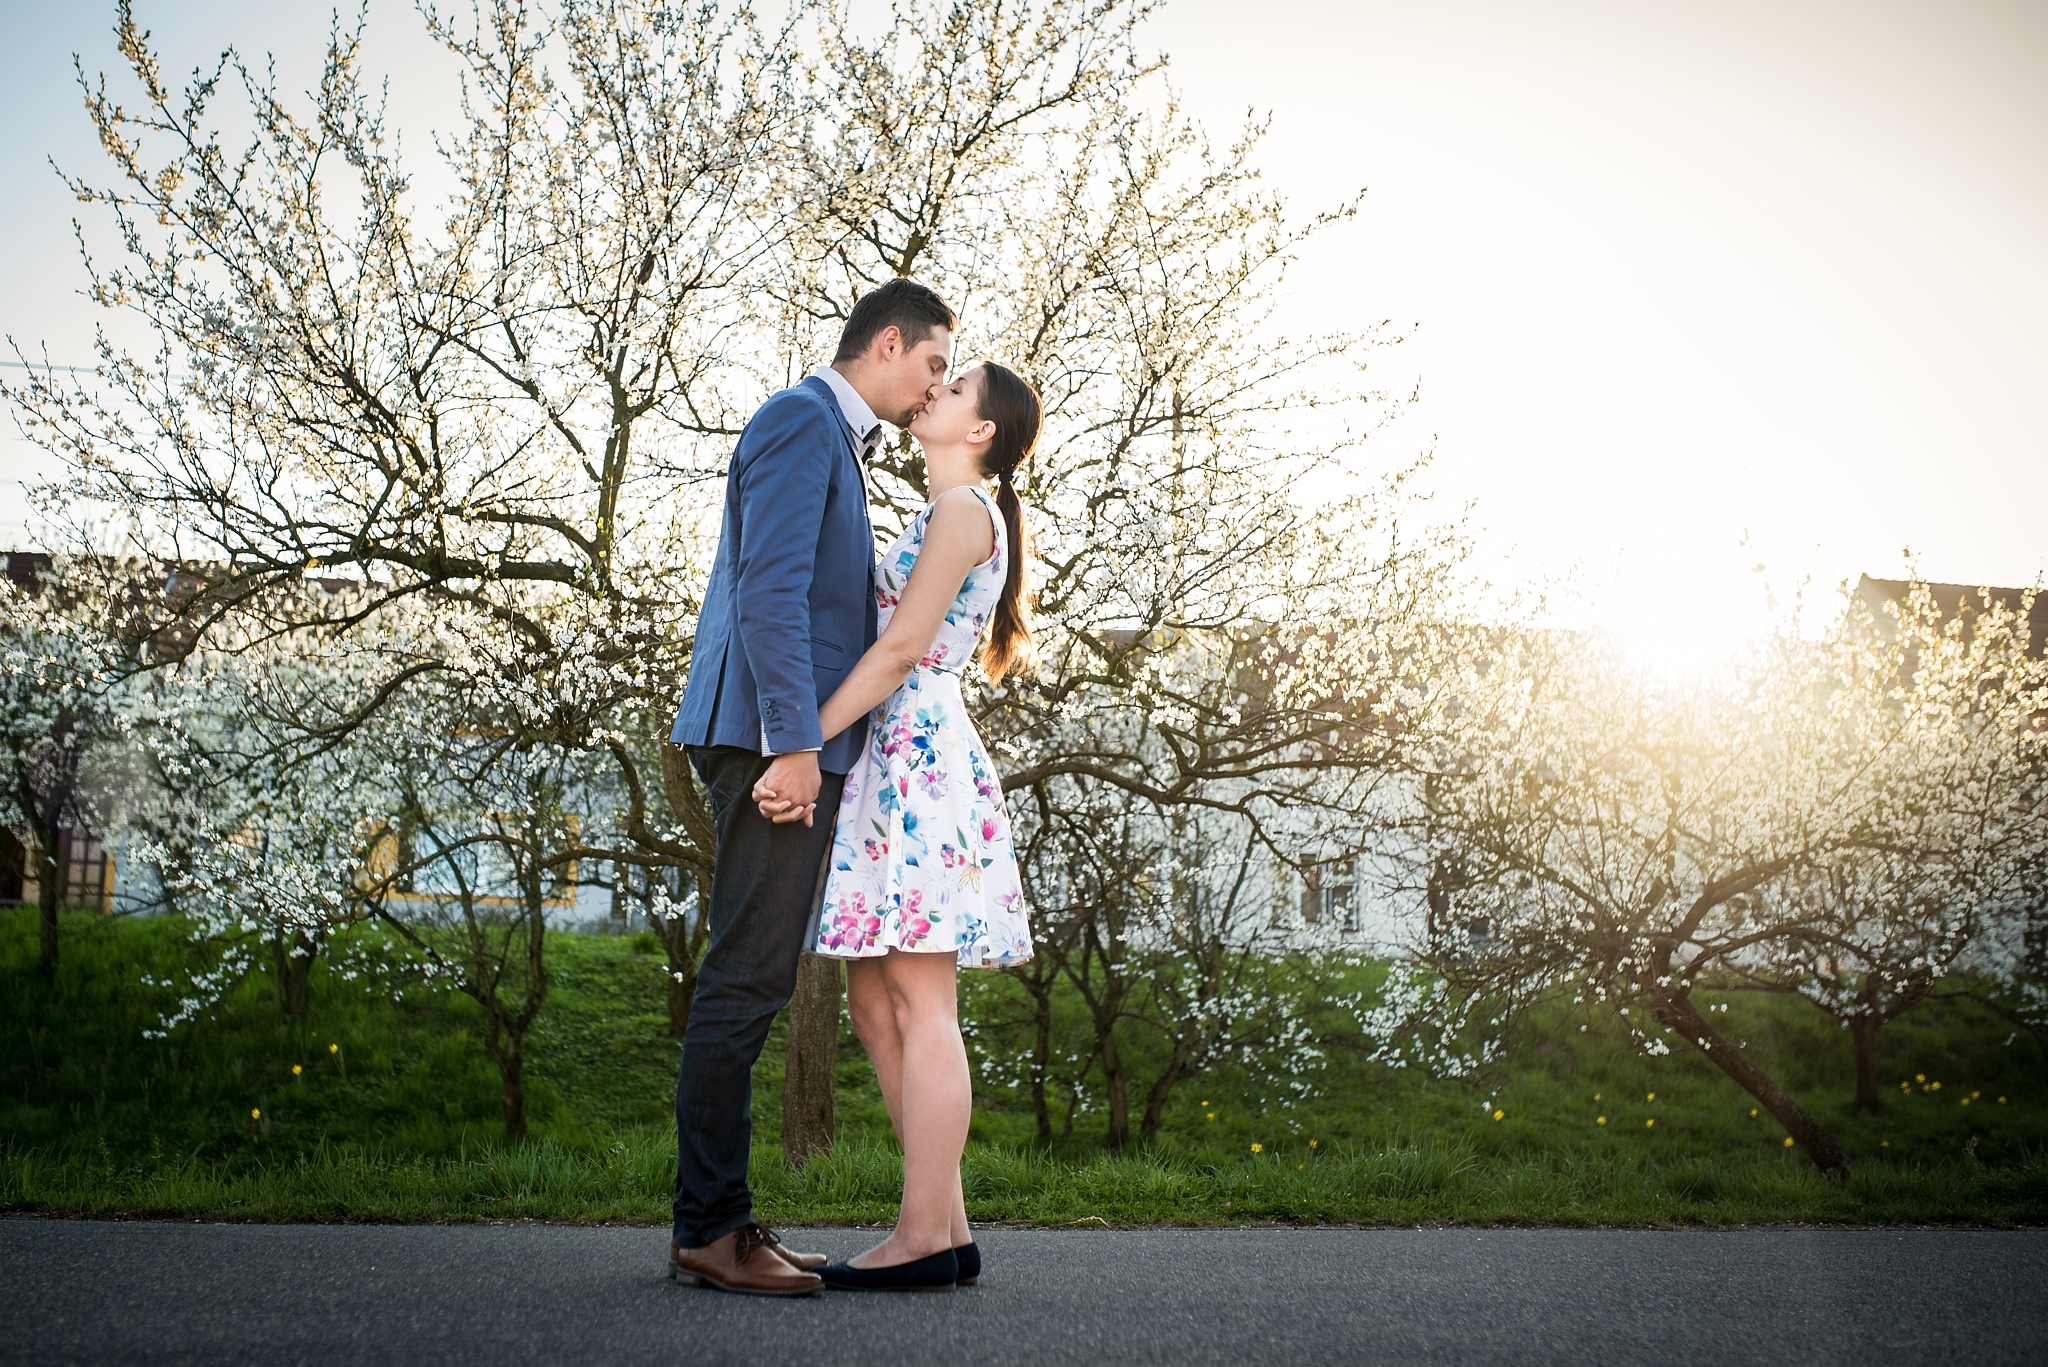 How to do a Couples Photoshoot: Romance, Coordinated Colors, and Smiles